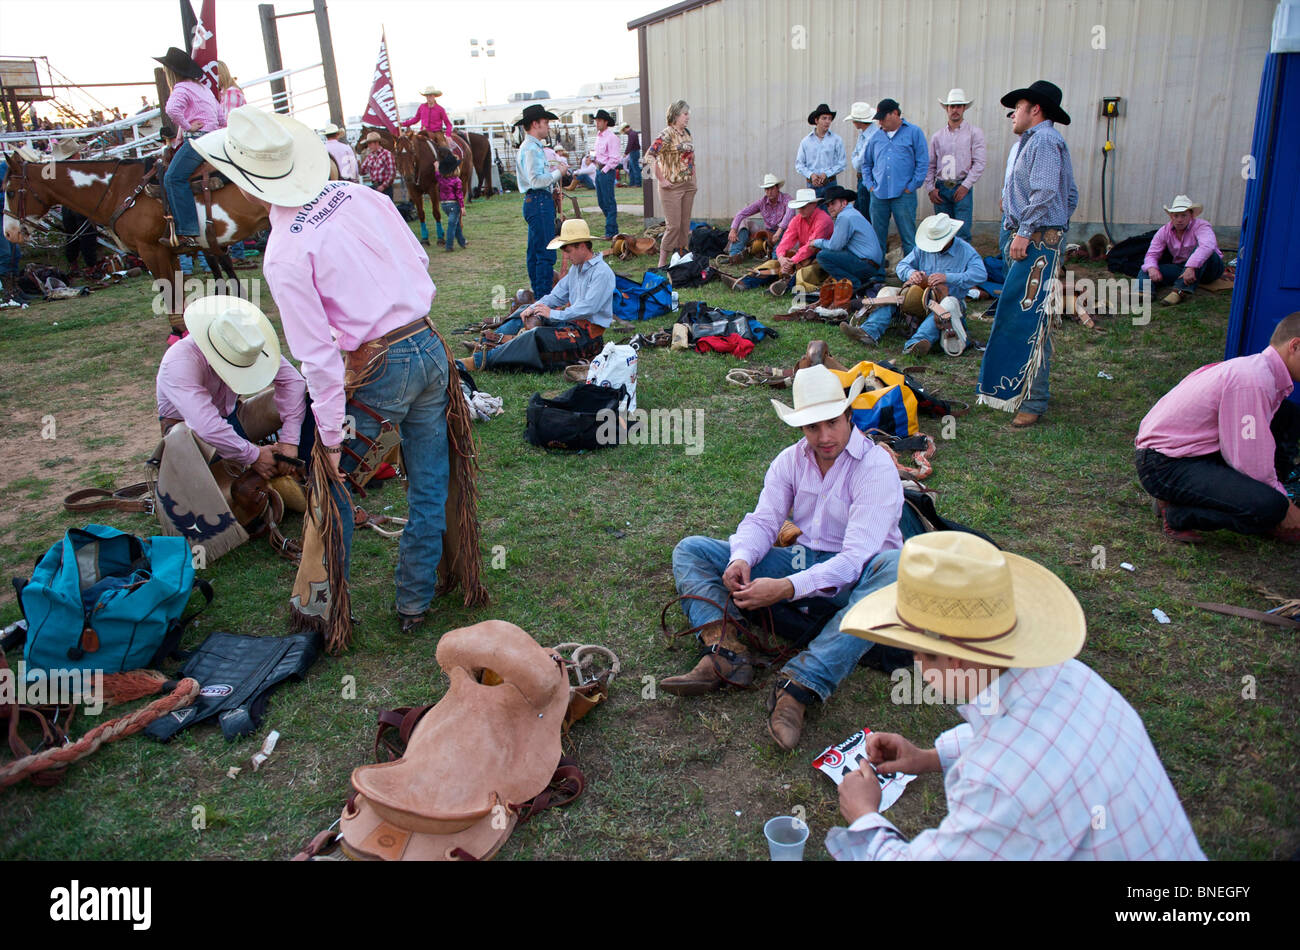 Cowboy members of  PRCA waiting backstage for  rodeo event  in Bridgeport, Texas, USA Stock Photo